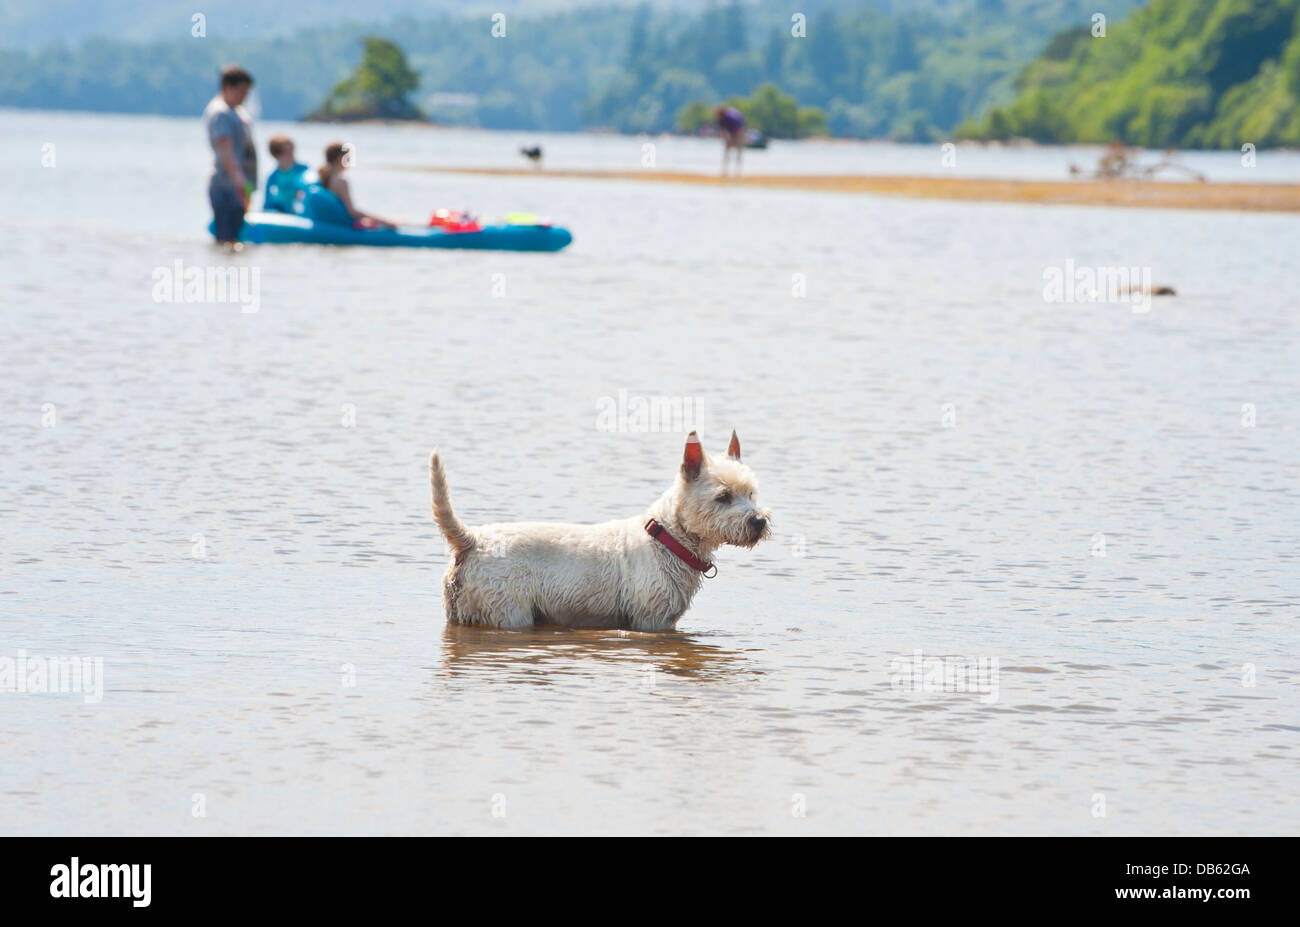 A West Highland terrier dog cools off in Lake Derwentwater in Keswick in the Lake District. - Stock Image